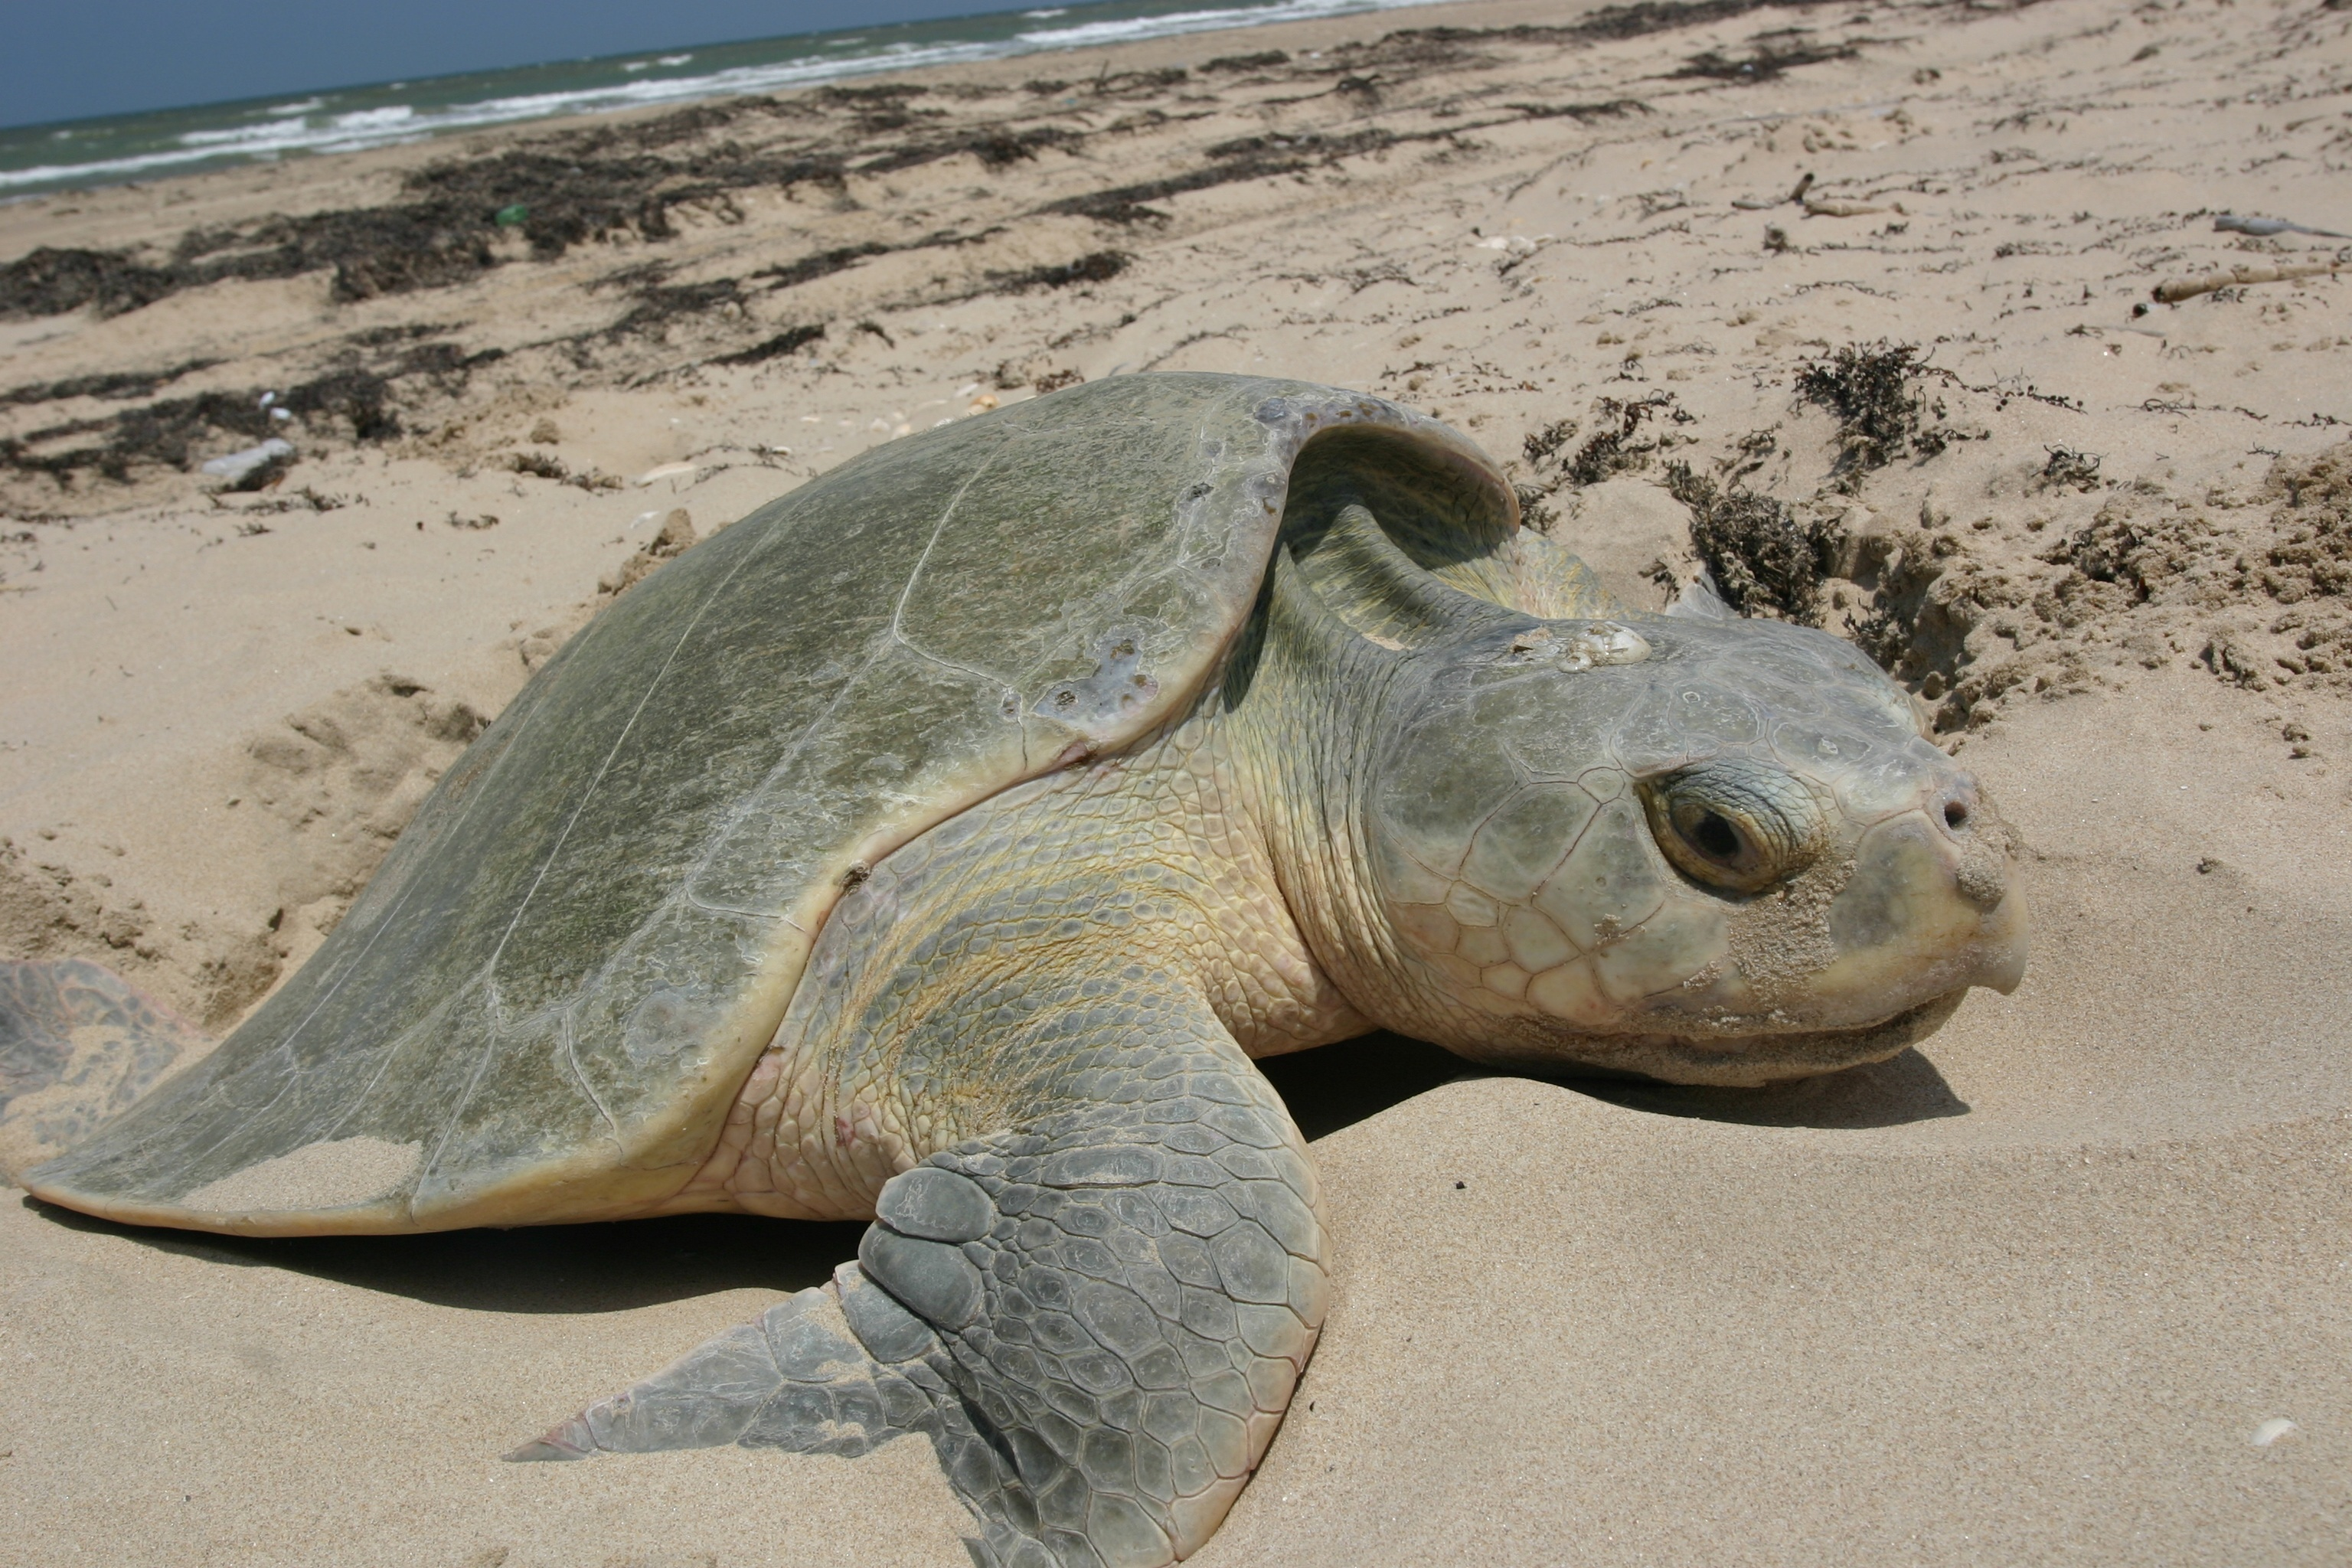 Turtle on the Shore, Animal, Beach, Nature, Sand, HQ Photo